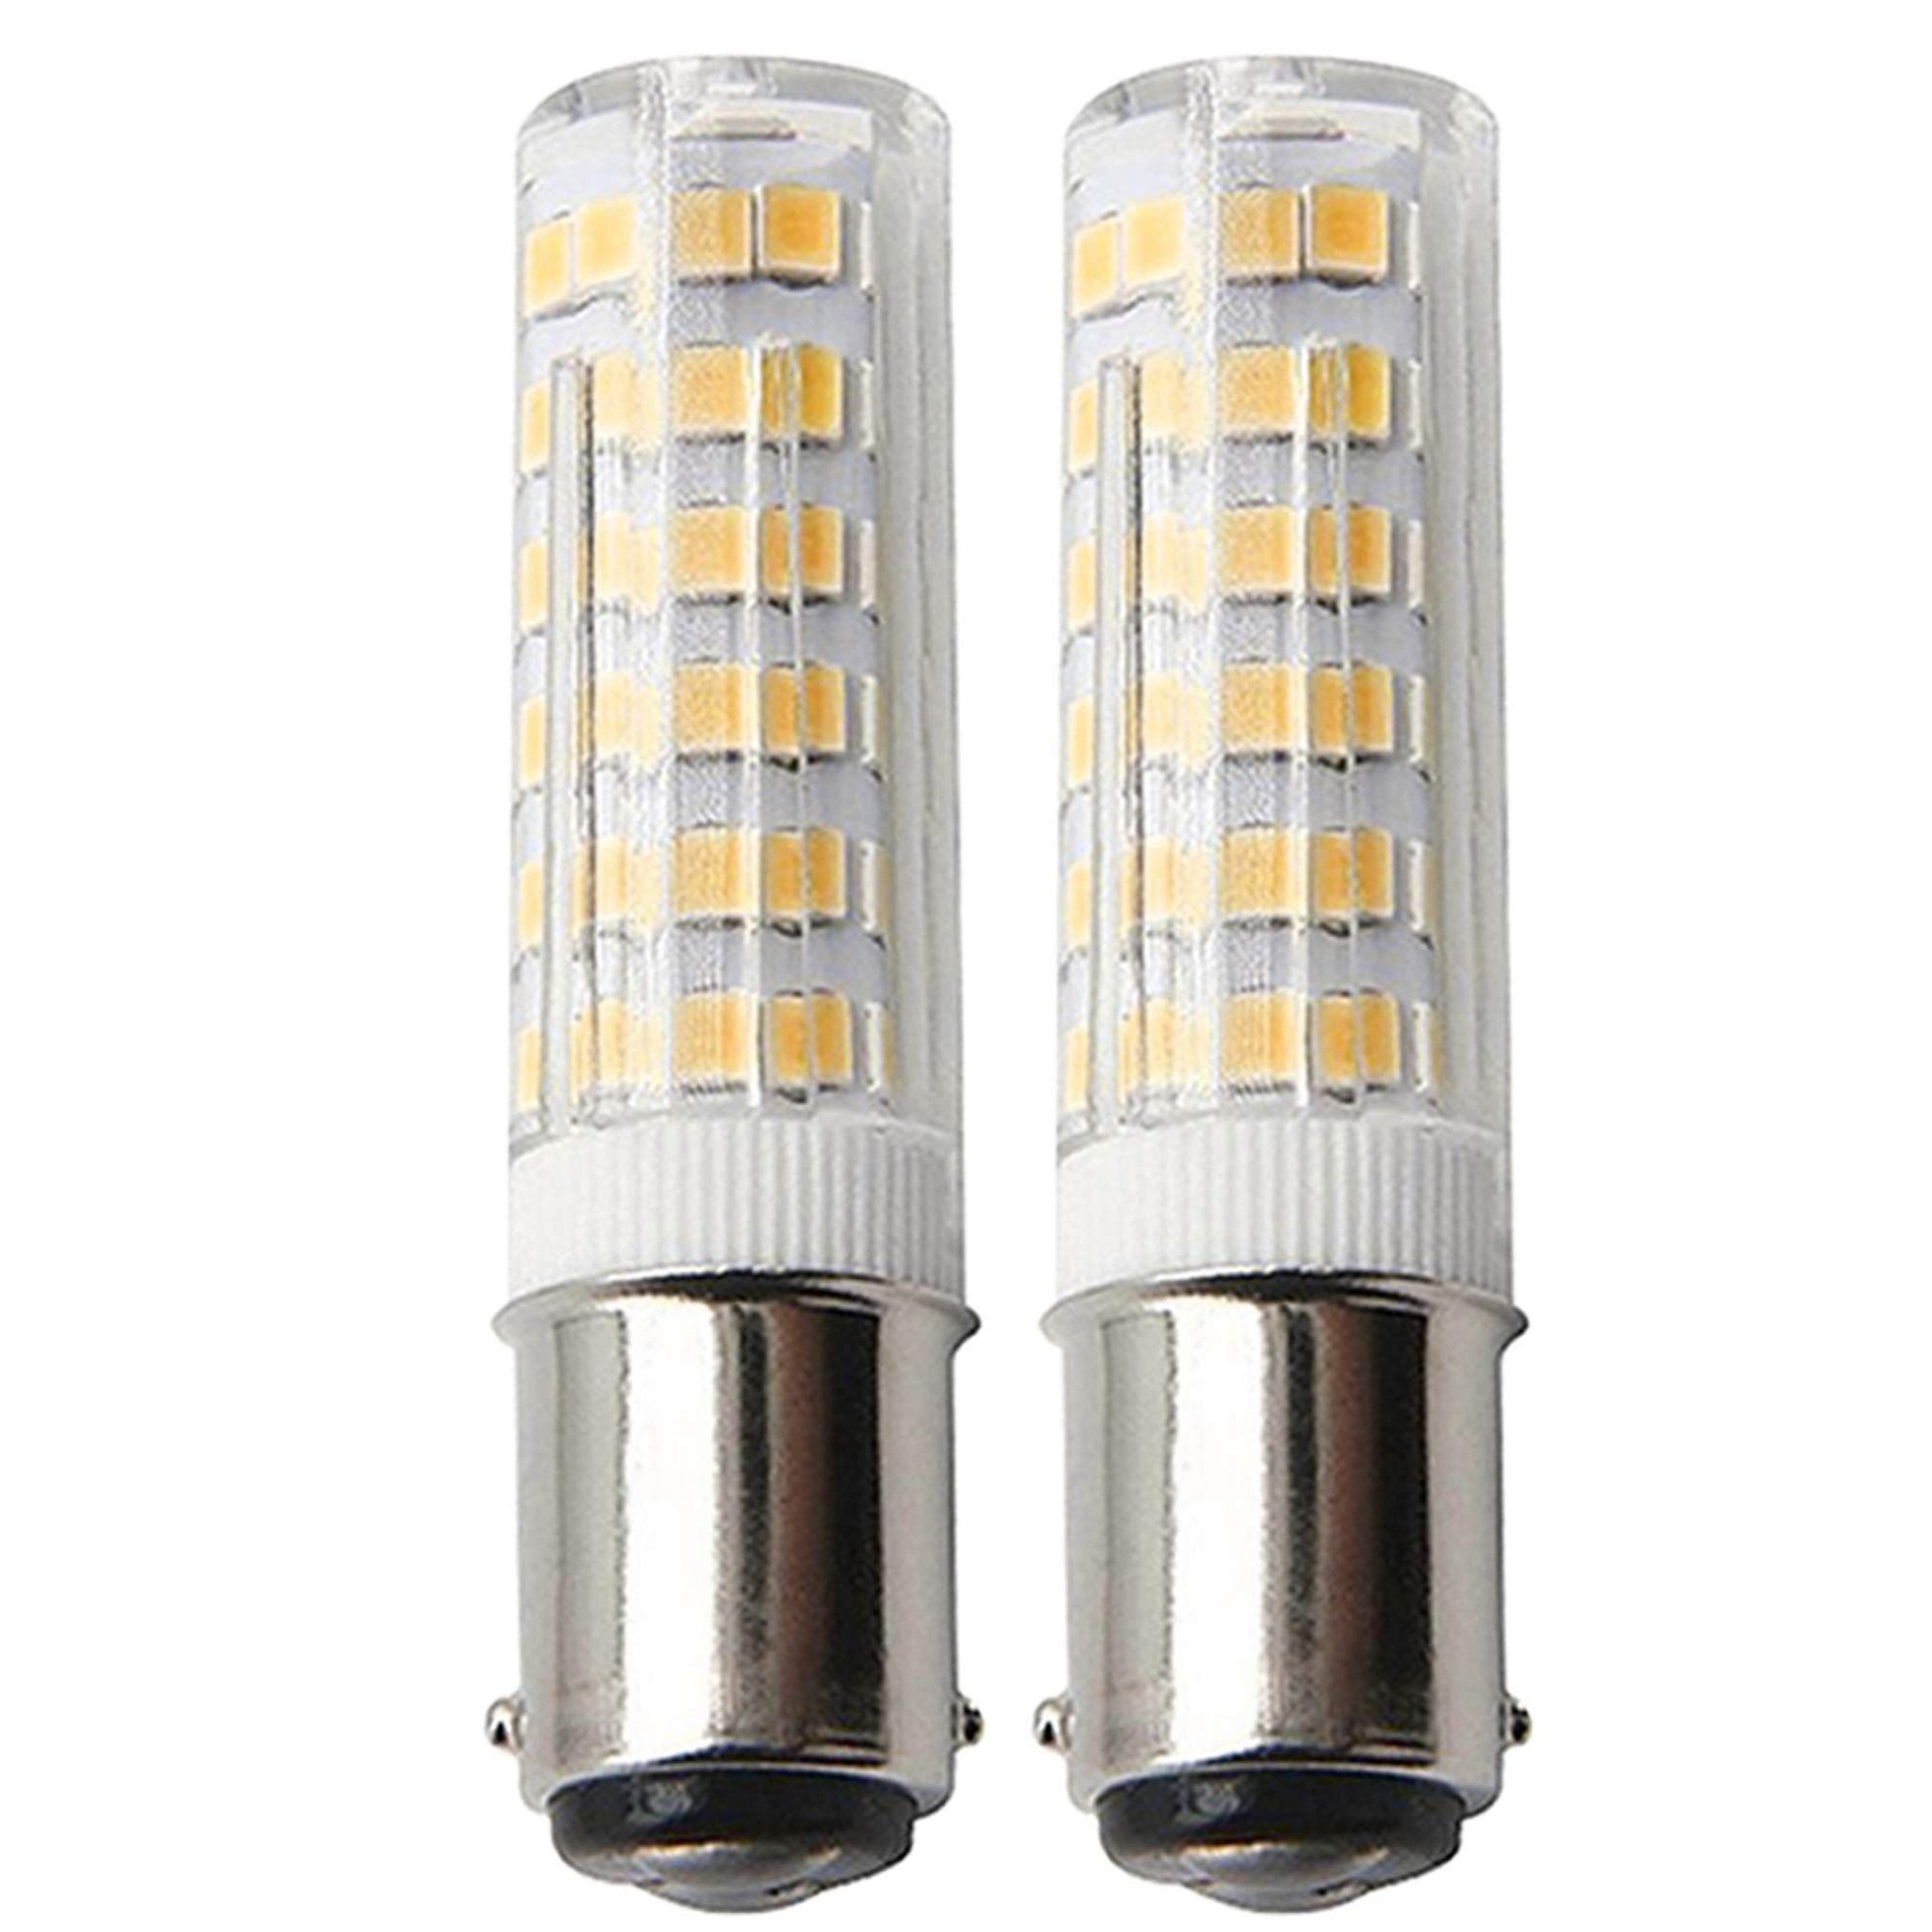 120v 6w Ba15d Dimmable Led Light Bulb 50w Equivalent Warm White 3000k Ba15d Double Contact Bayonet Bas In 2020 Crystal Ceiling Lamps Led Light Bulb Dimmable Led Lights